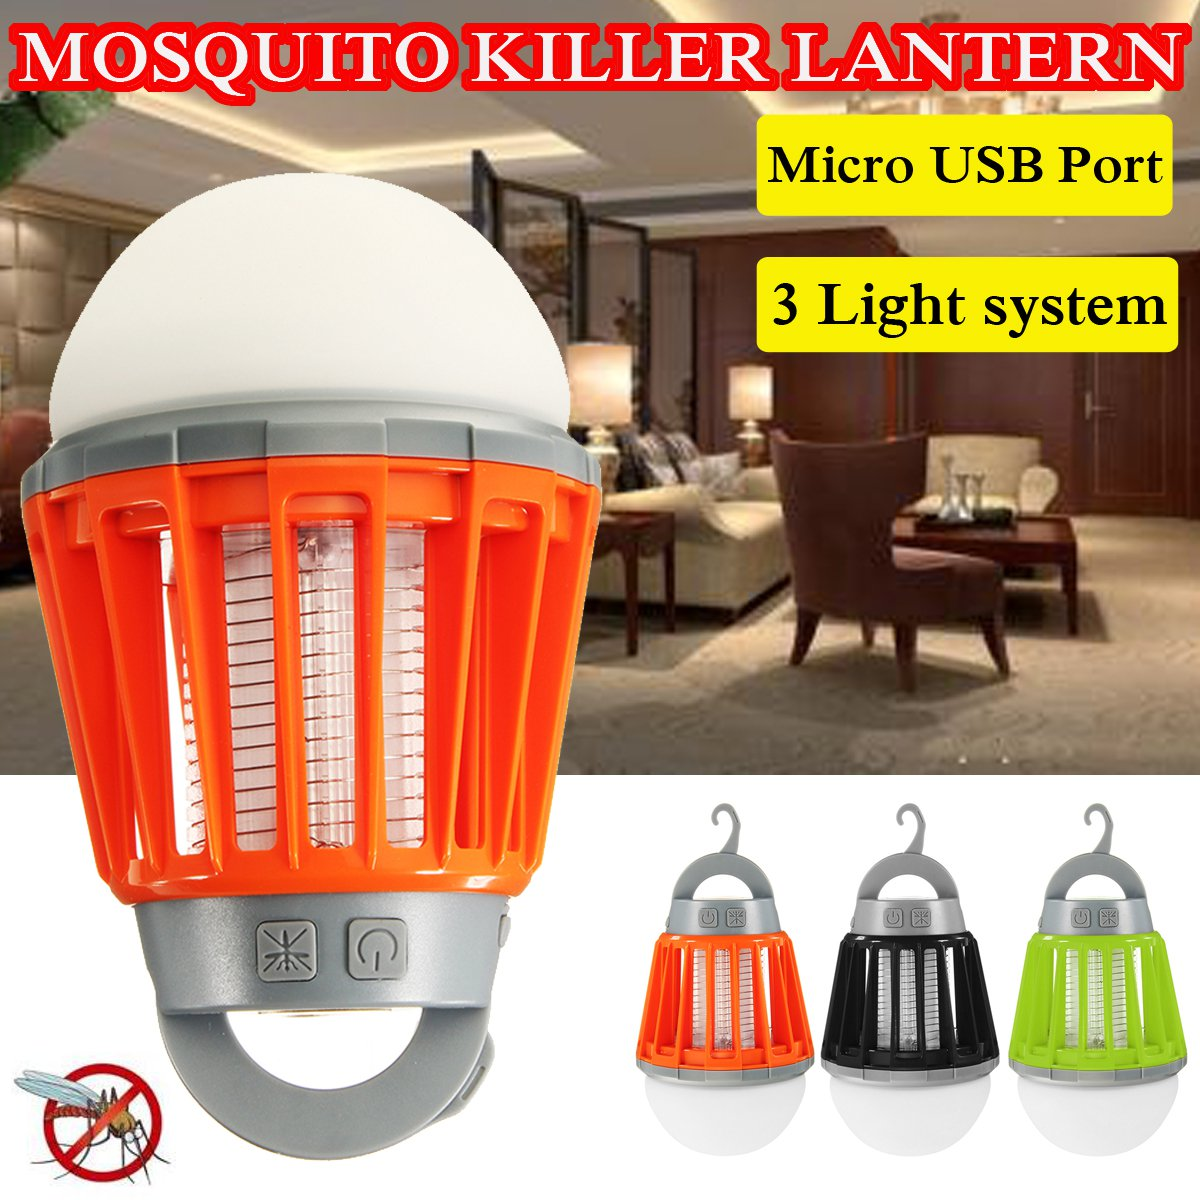 USB Charging Mosquito Killer Lamp Mosquito Zapper Lantern Camping Light Multi-Purpose Pest Repeller Waterproof Bug KillerUSB Charging Mosquito Killer Lamp Mosquito Zapper Lantern Camping Light Multi-Purpose Pest Repeller Waterproof Bug Killer